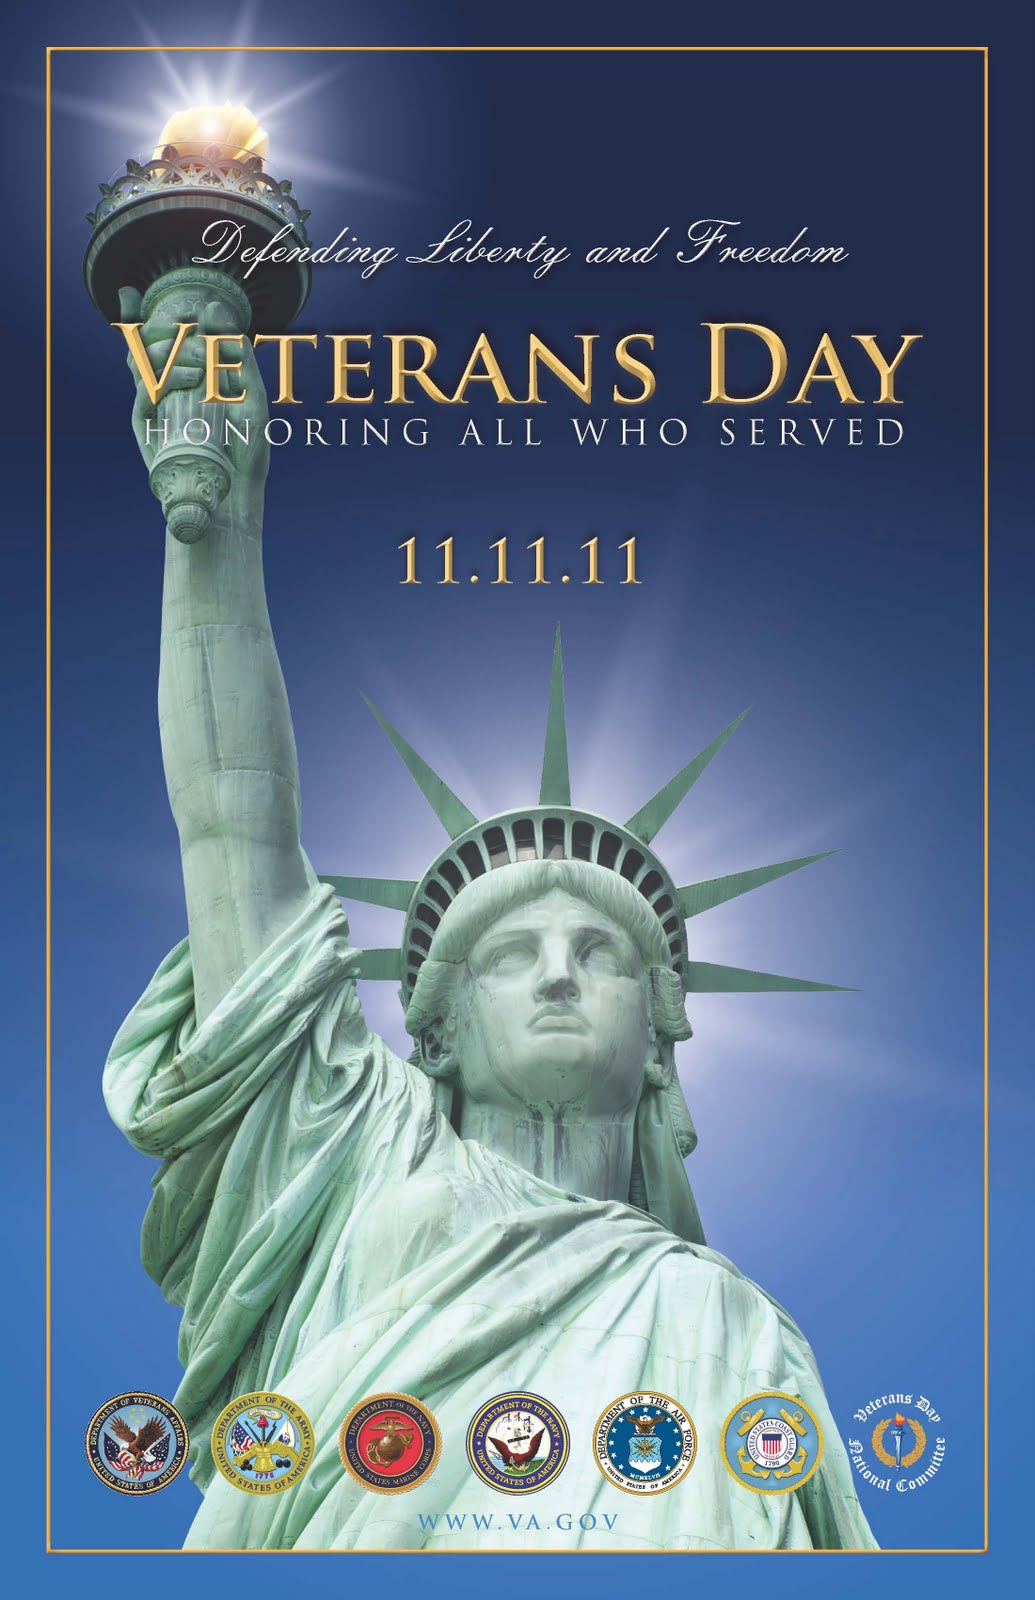 Veterans Day 2011 Poster